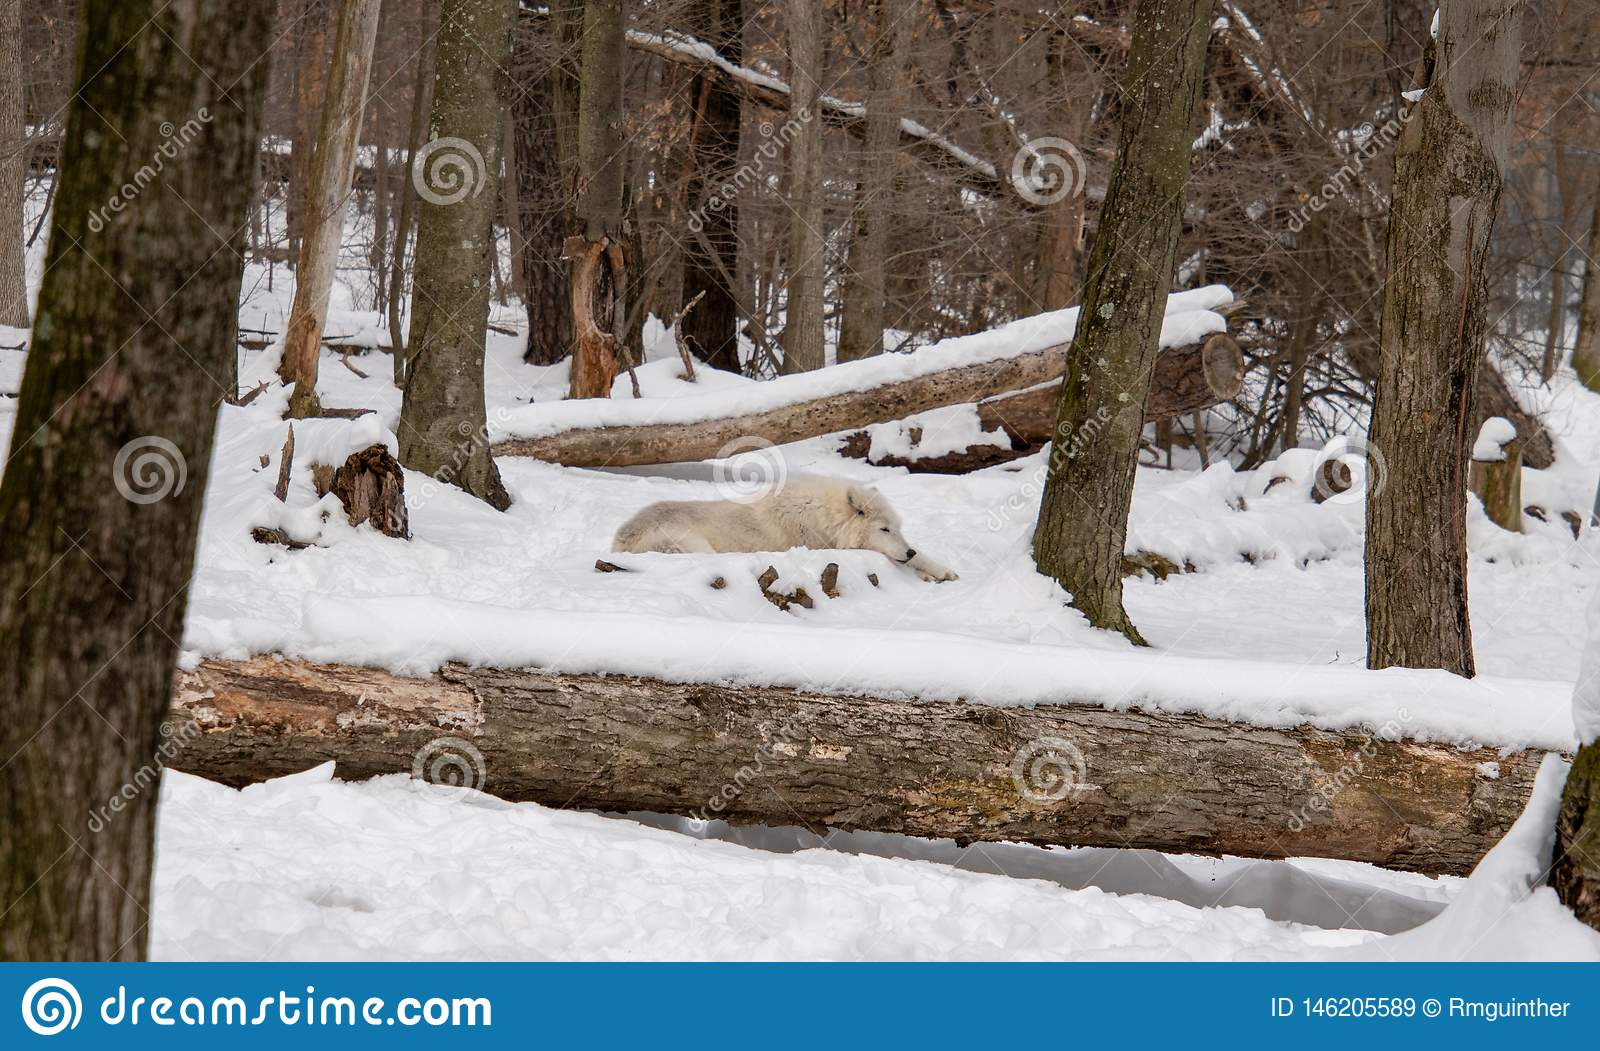 An Arctic Wolf laying in the snowy forest